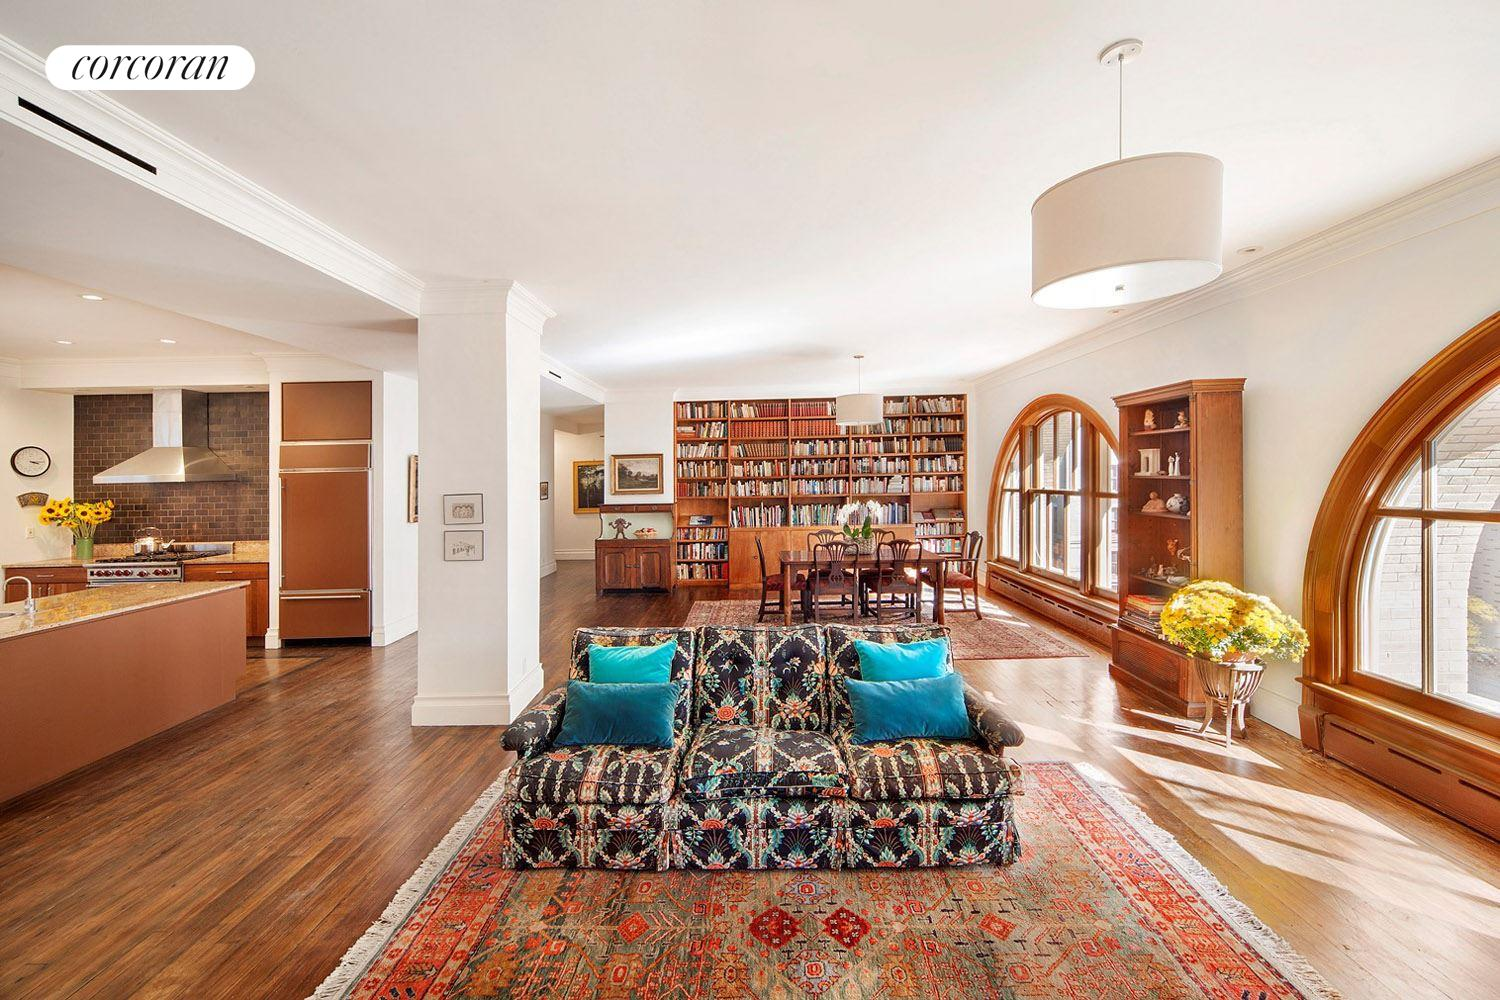 Tribeca apt for sale 2 of 4 84 thomas street gd 1 bedroom for Tribeca apartment for sale